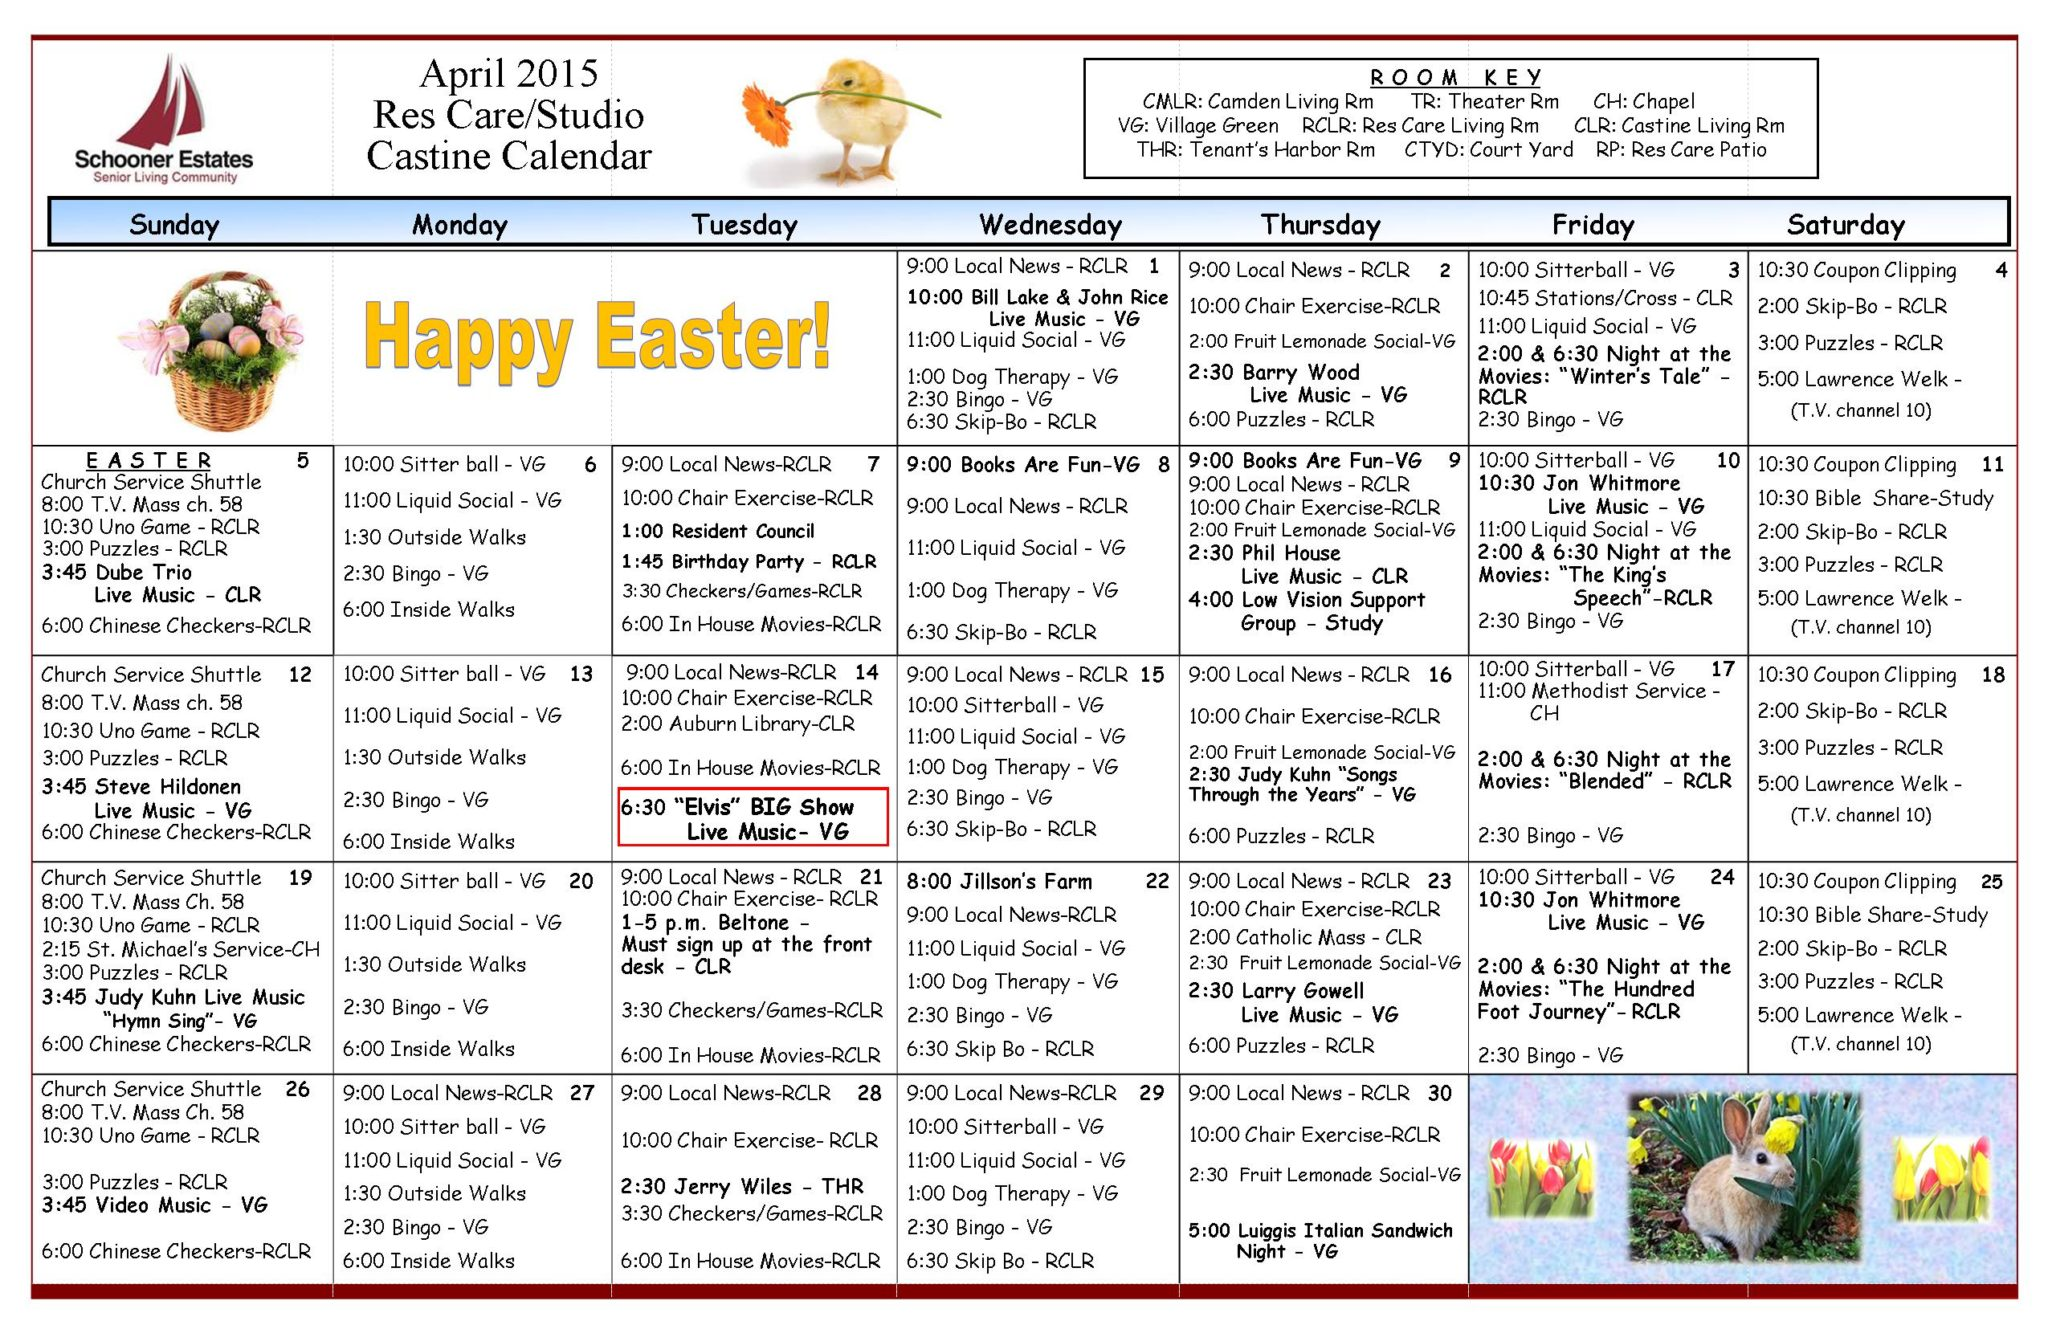 04 Res Care April Calendar 2015